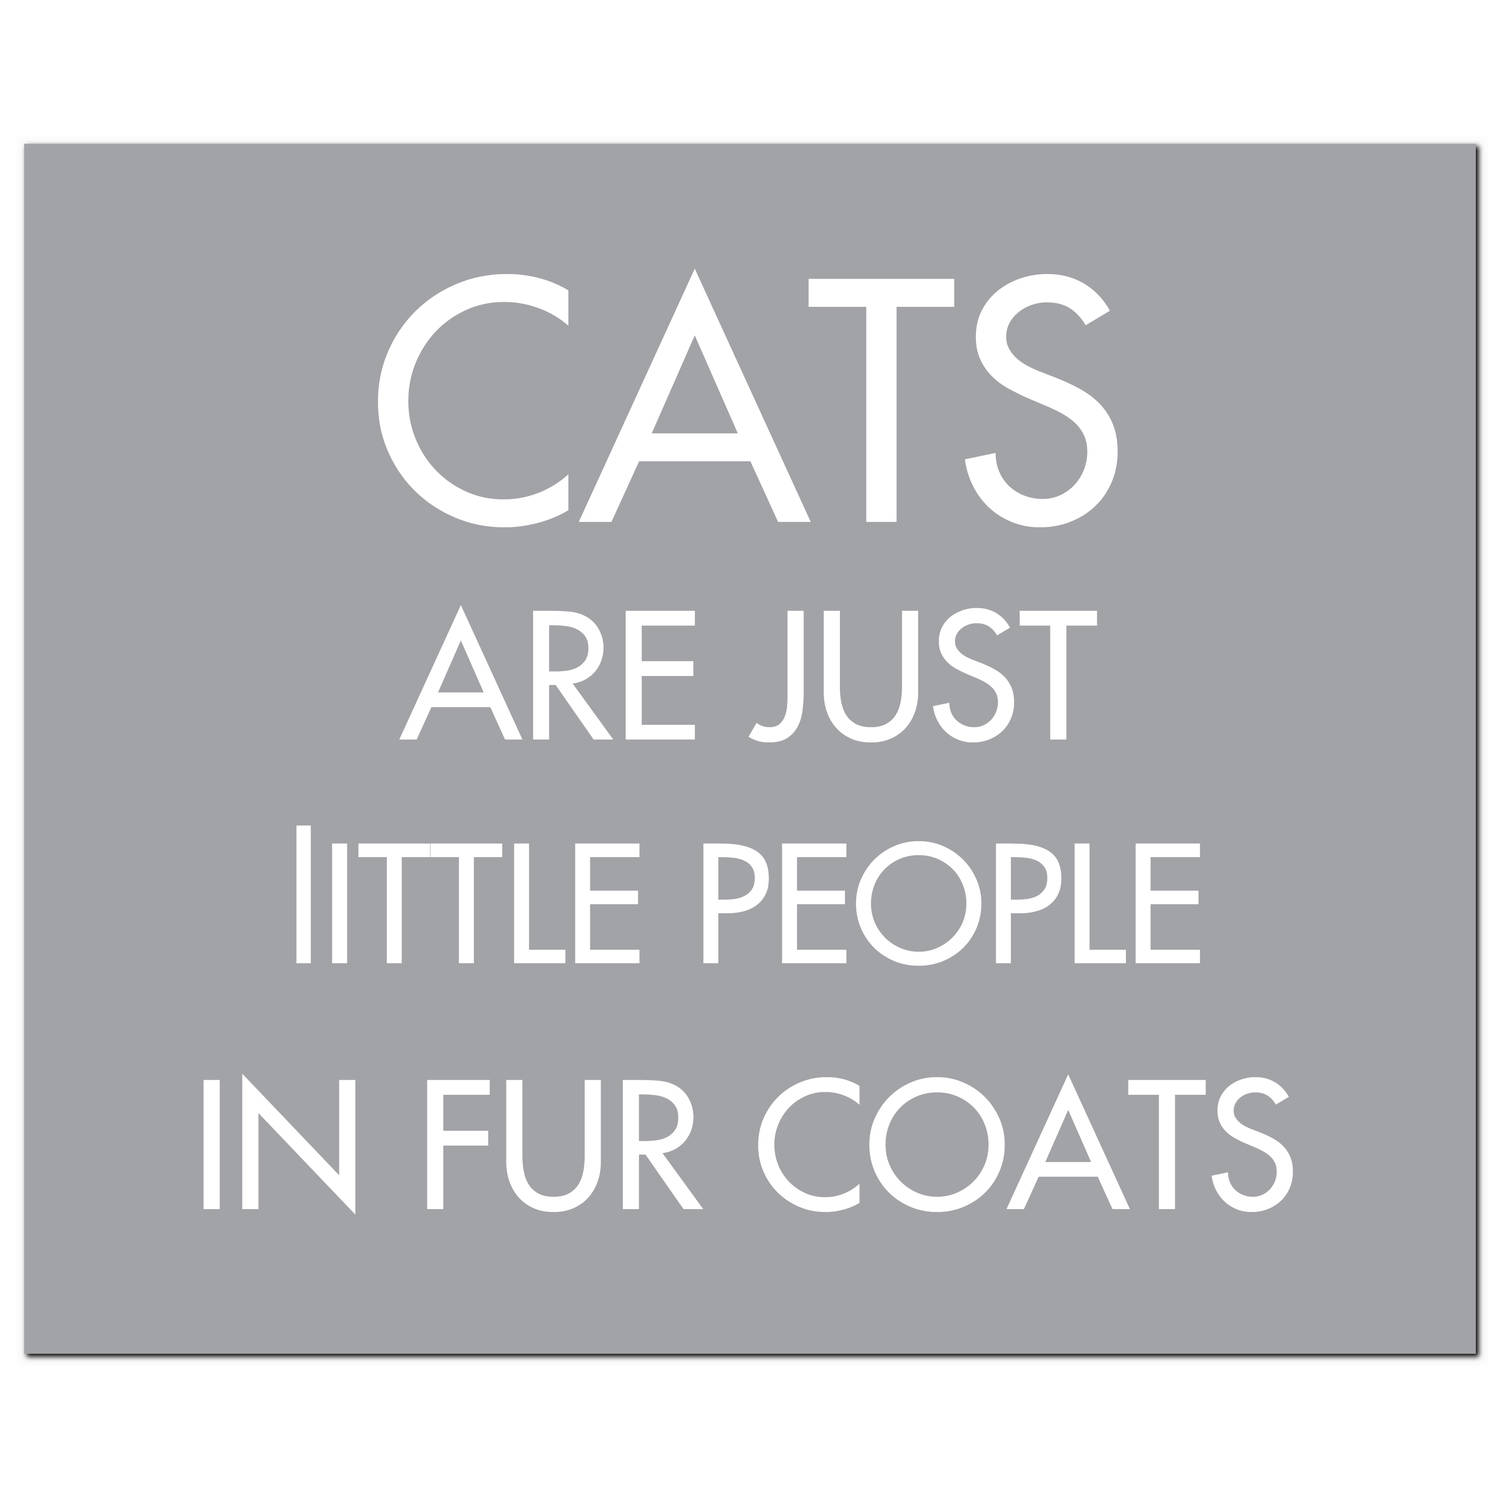 Hill Interiors 'Cats Are Just Little People' Silver Foil Plaque